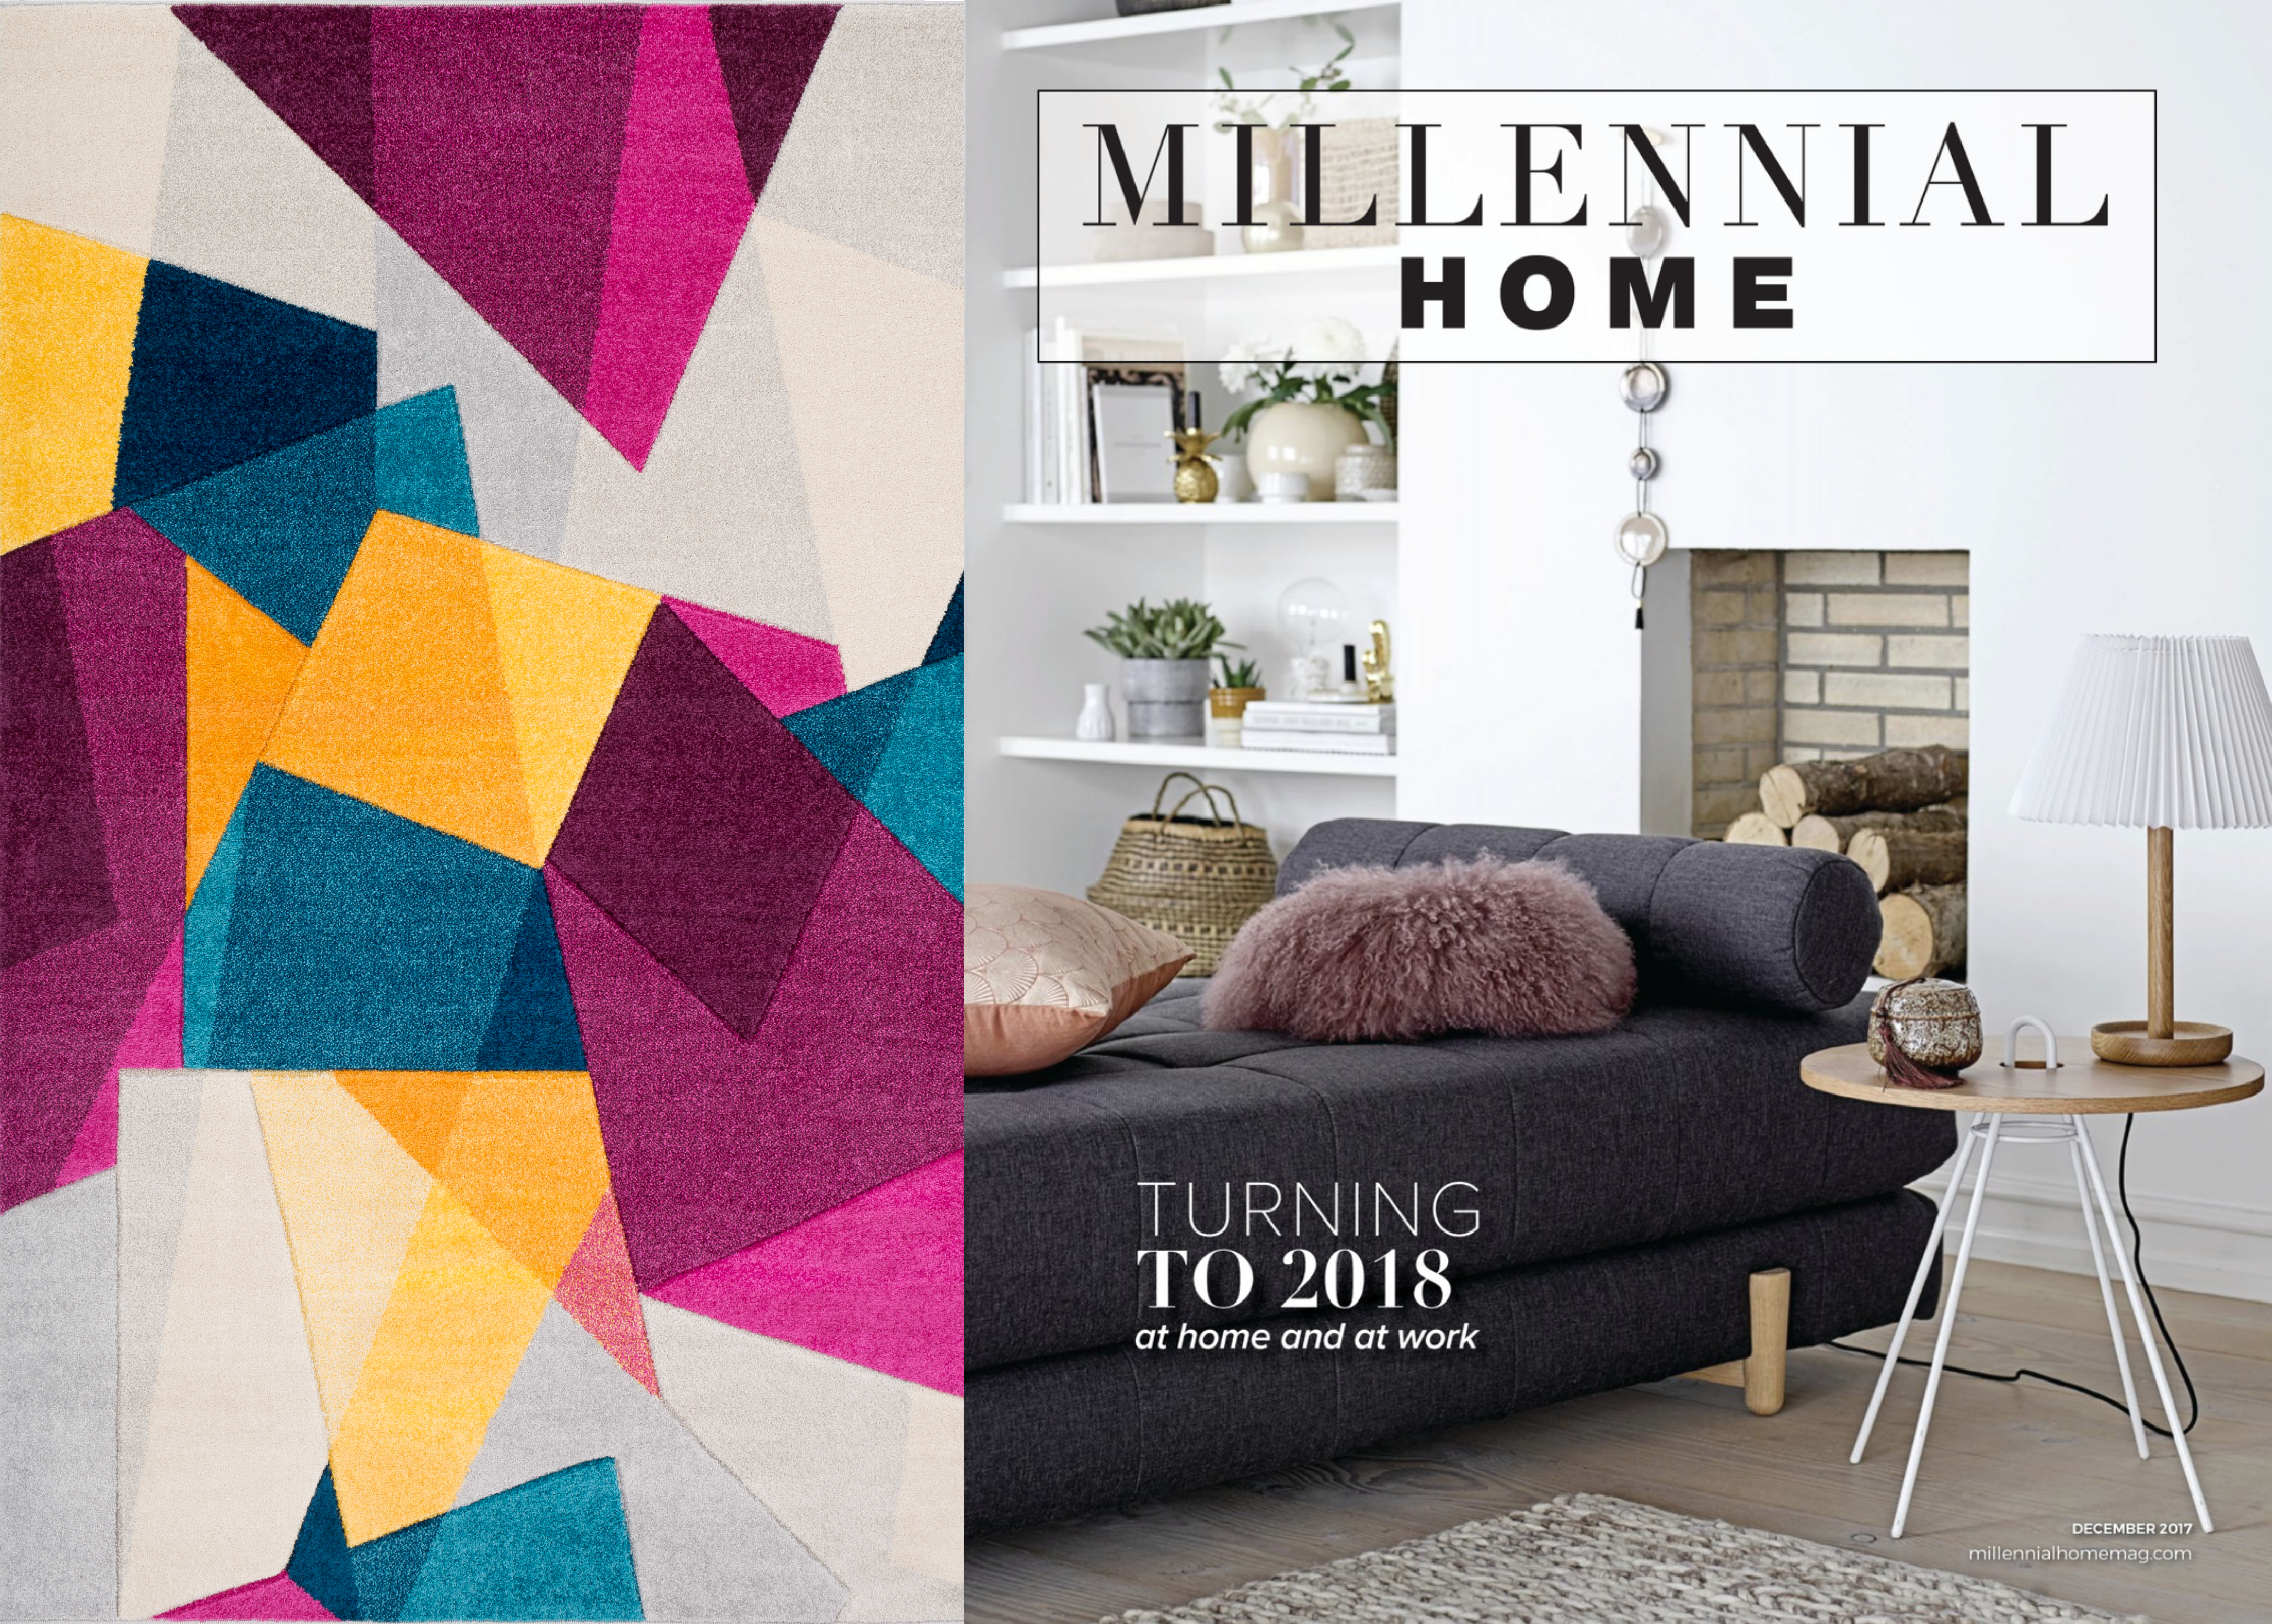 Millennial Homeu0027s December 2018 Issue Highlights The Saturated Jewel Tones  That Appeal To The Millennial Generation, Including Suryau0027s Machine Made  Rio Rug.